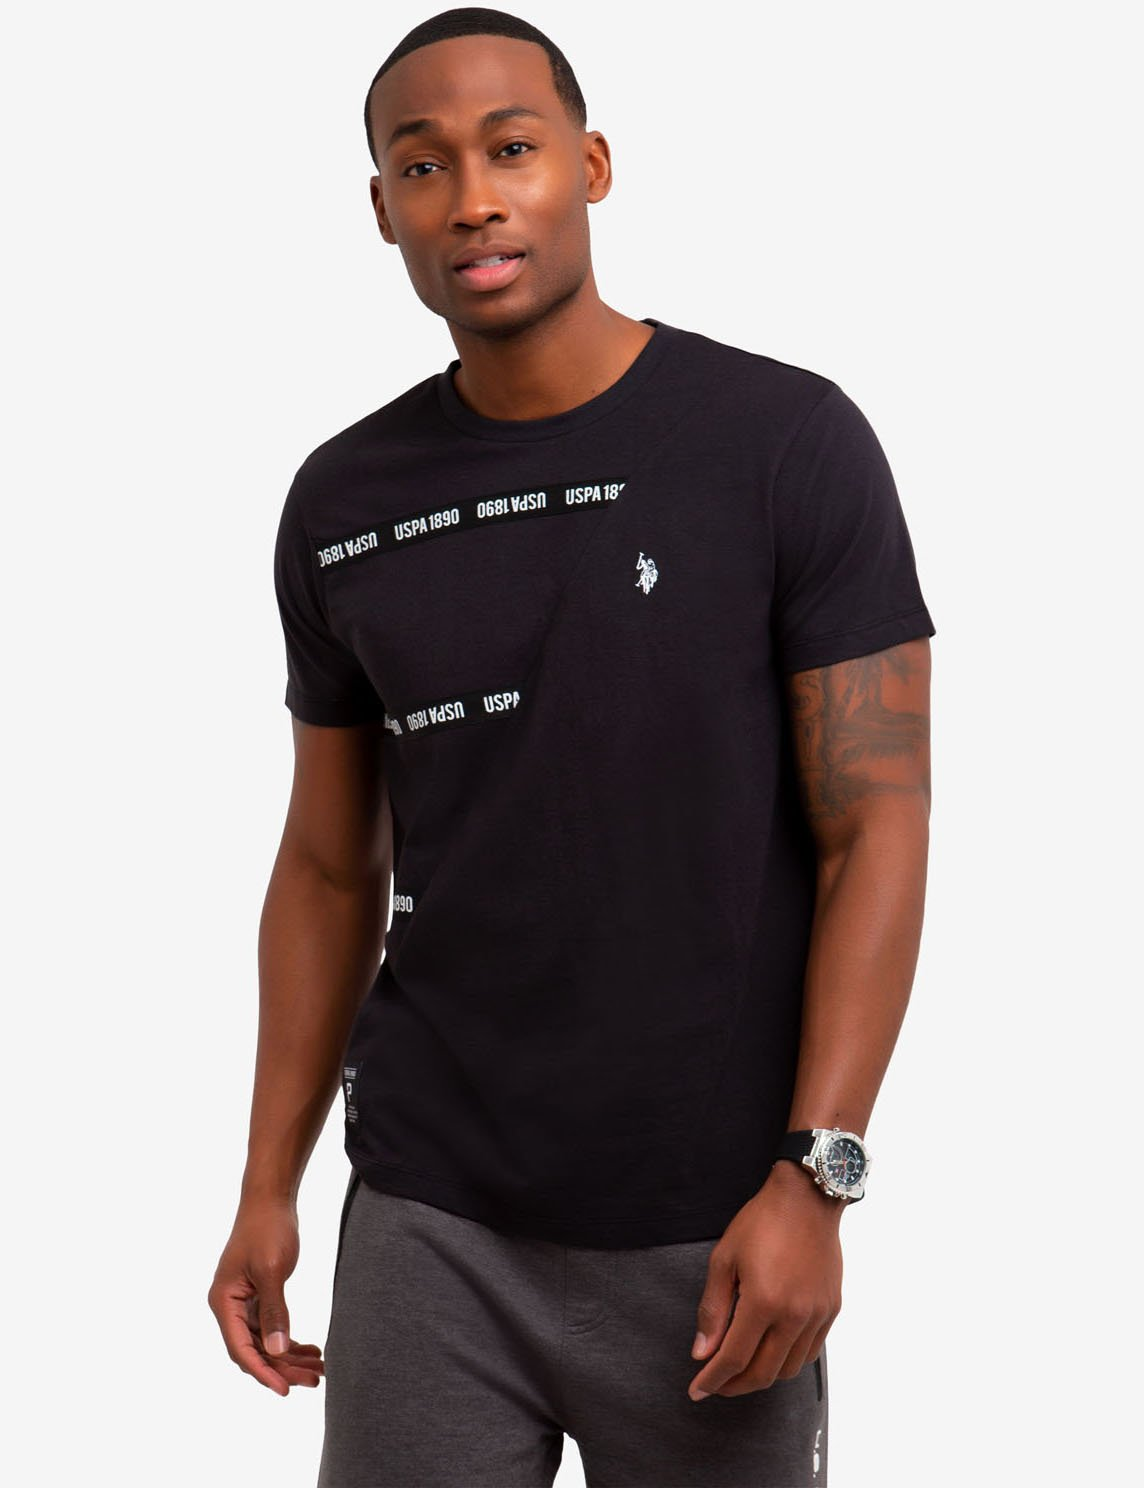 CREW NECK TAPE STRIPED T-SHIRT - U.S. Polo Assn.